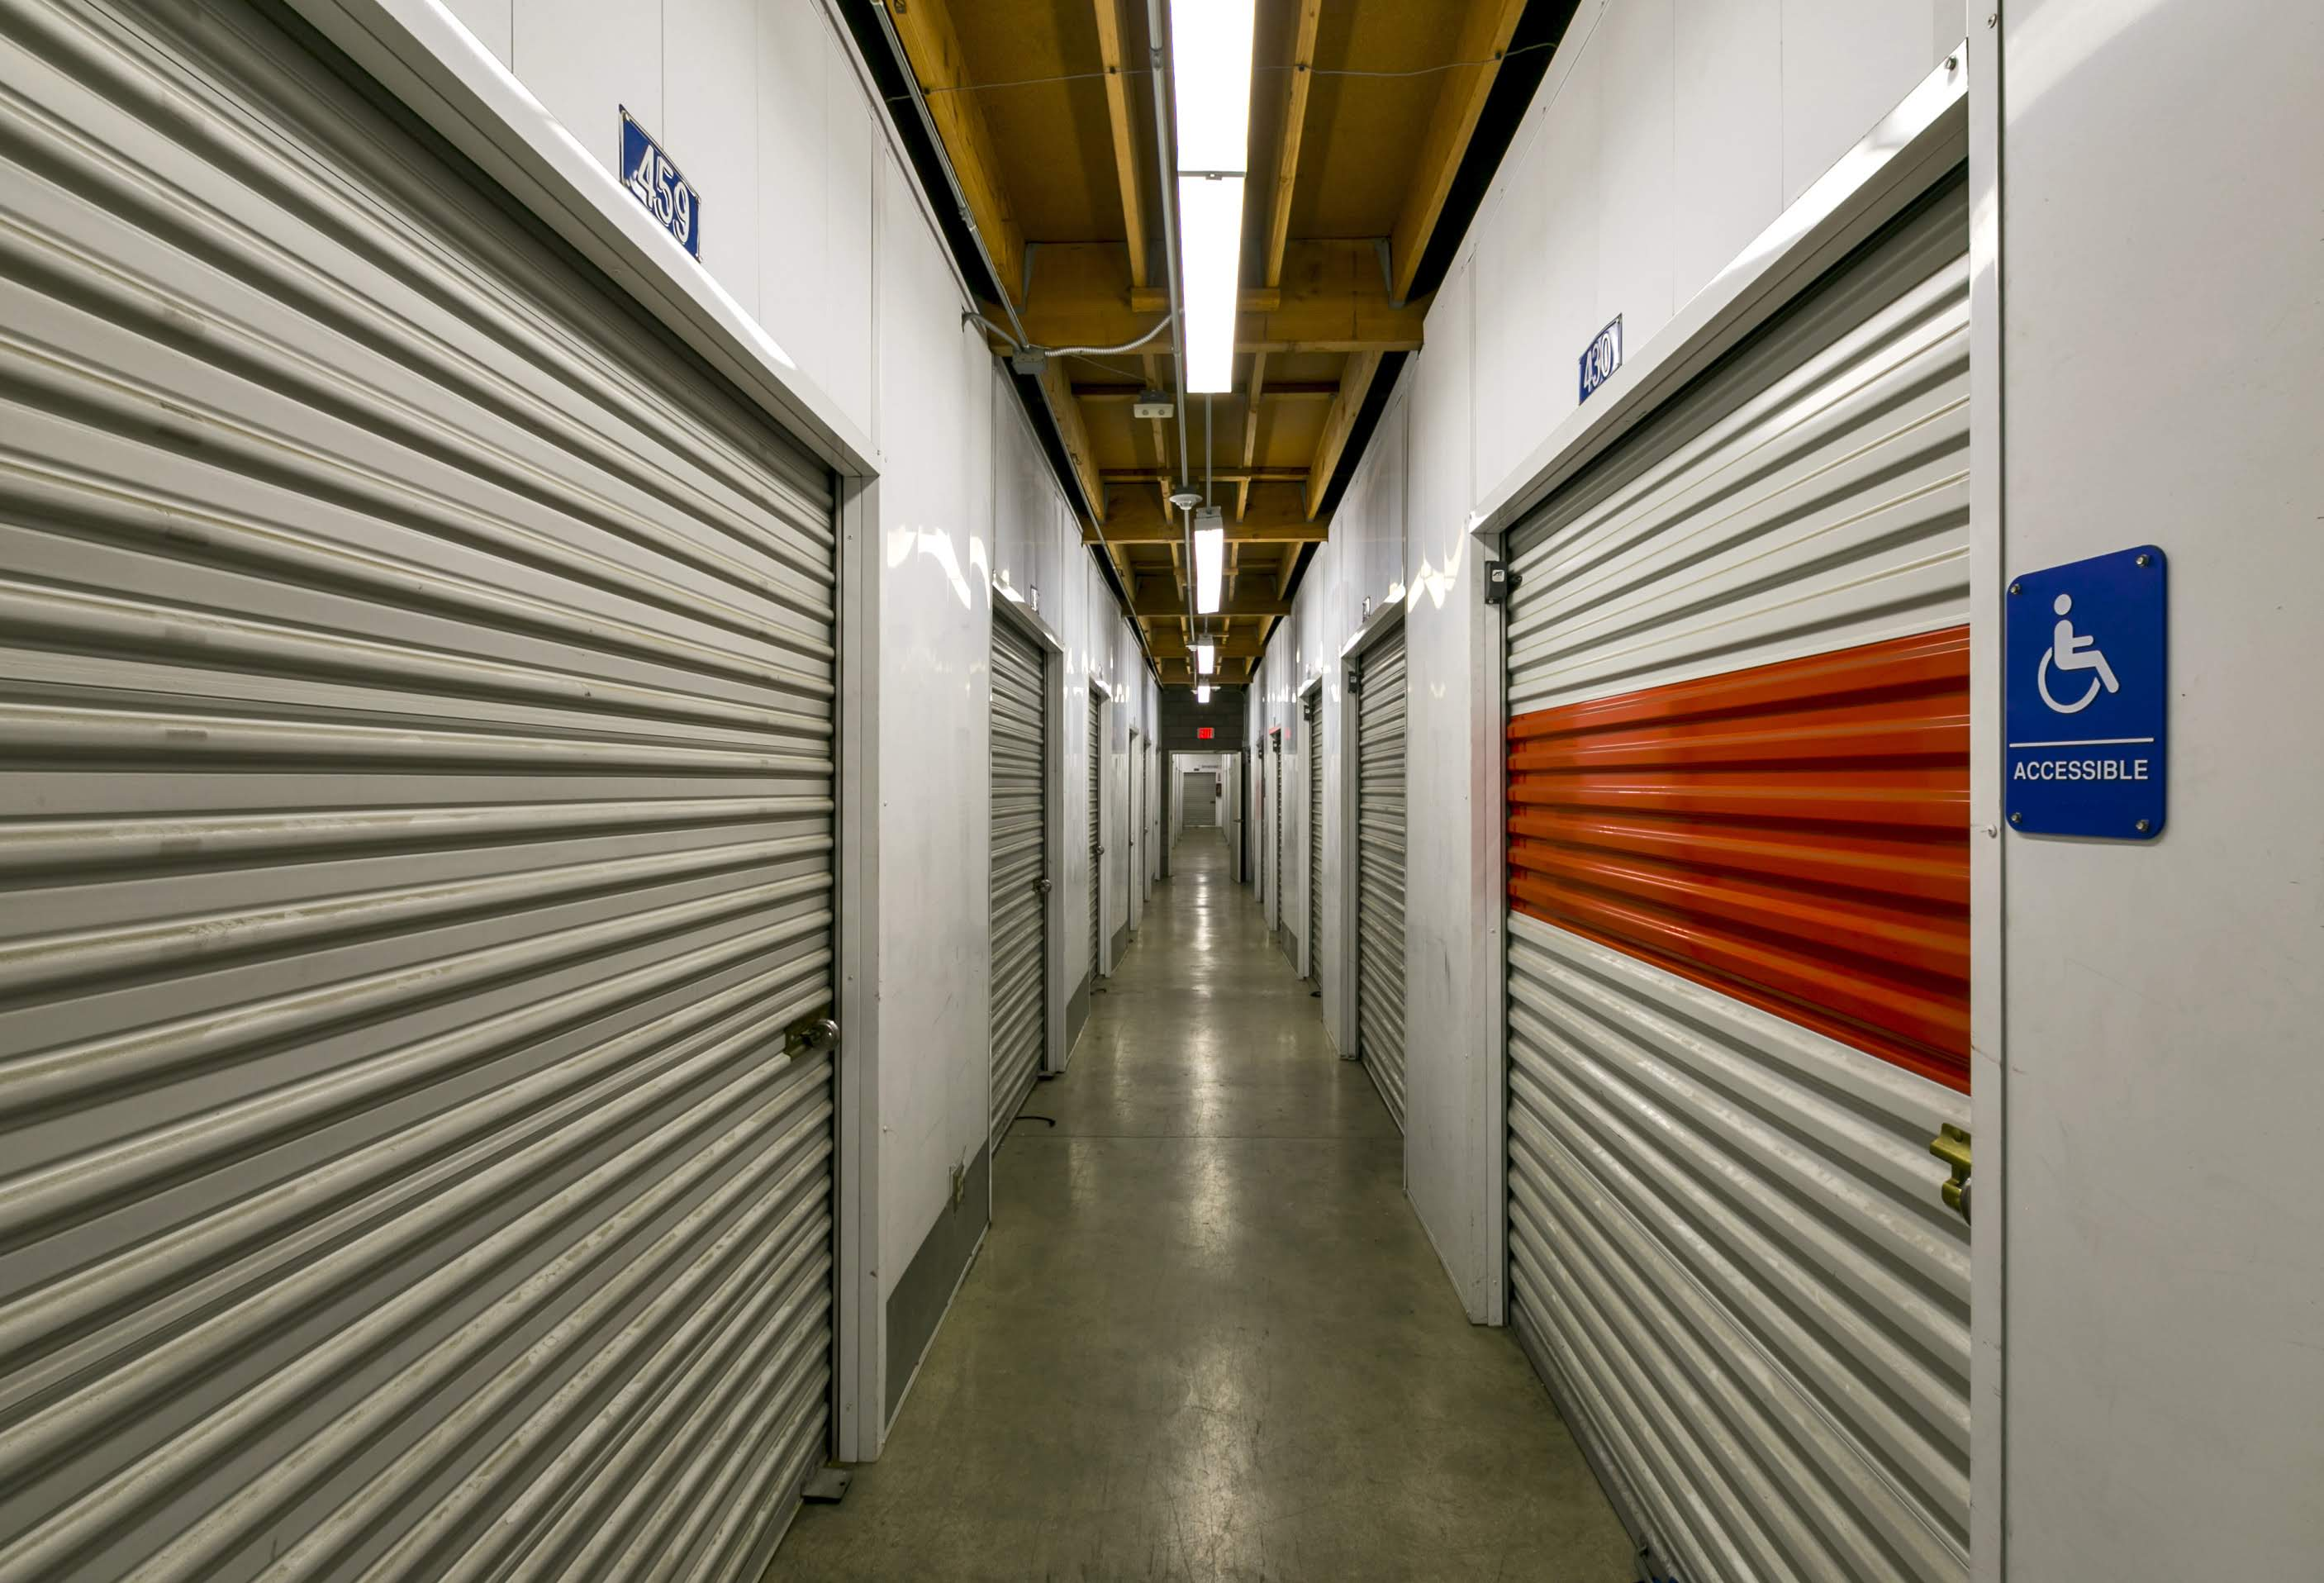 interior of storage building hallway